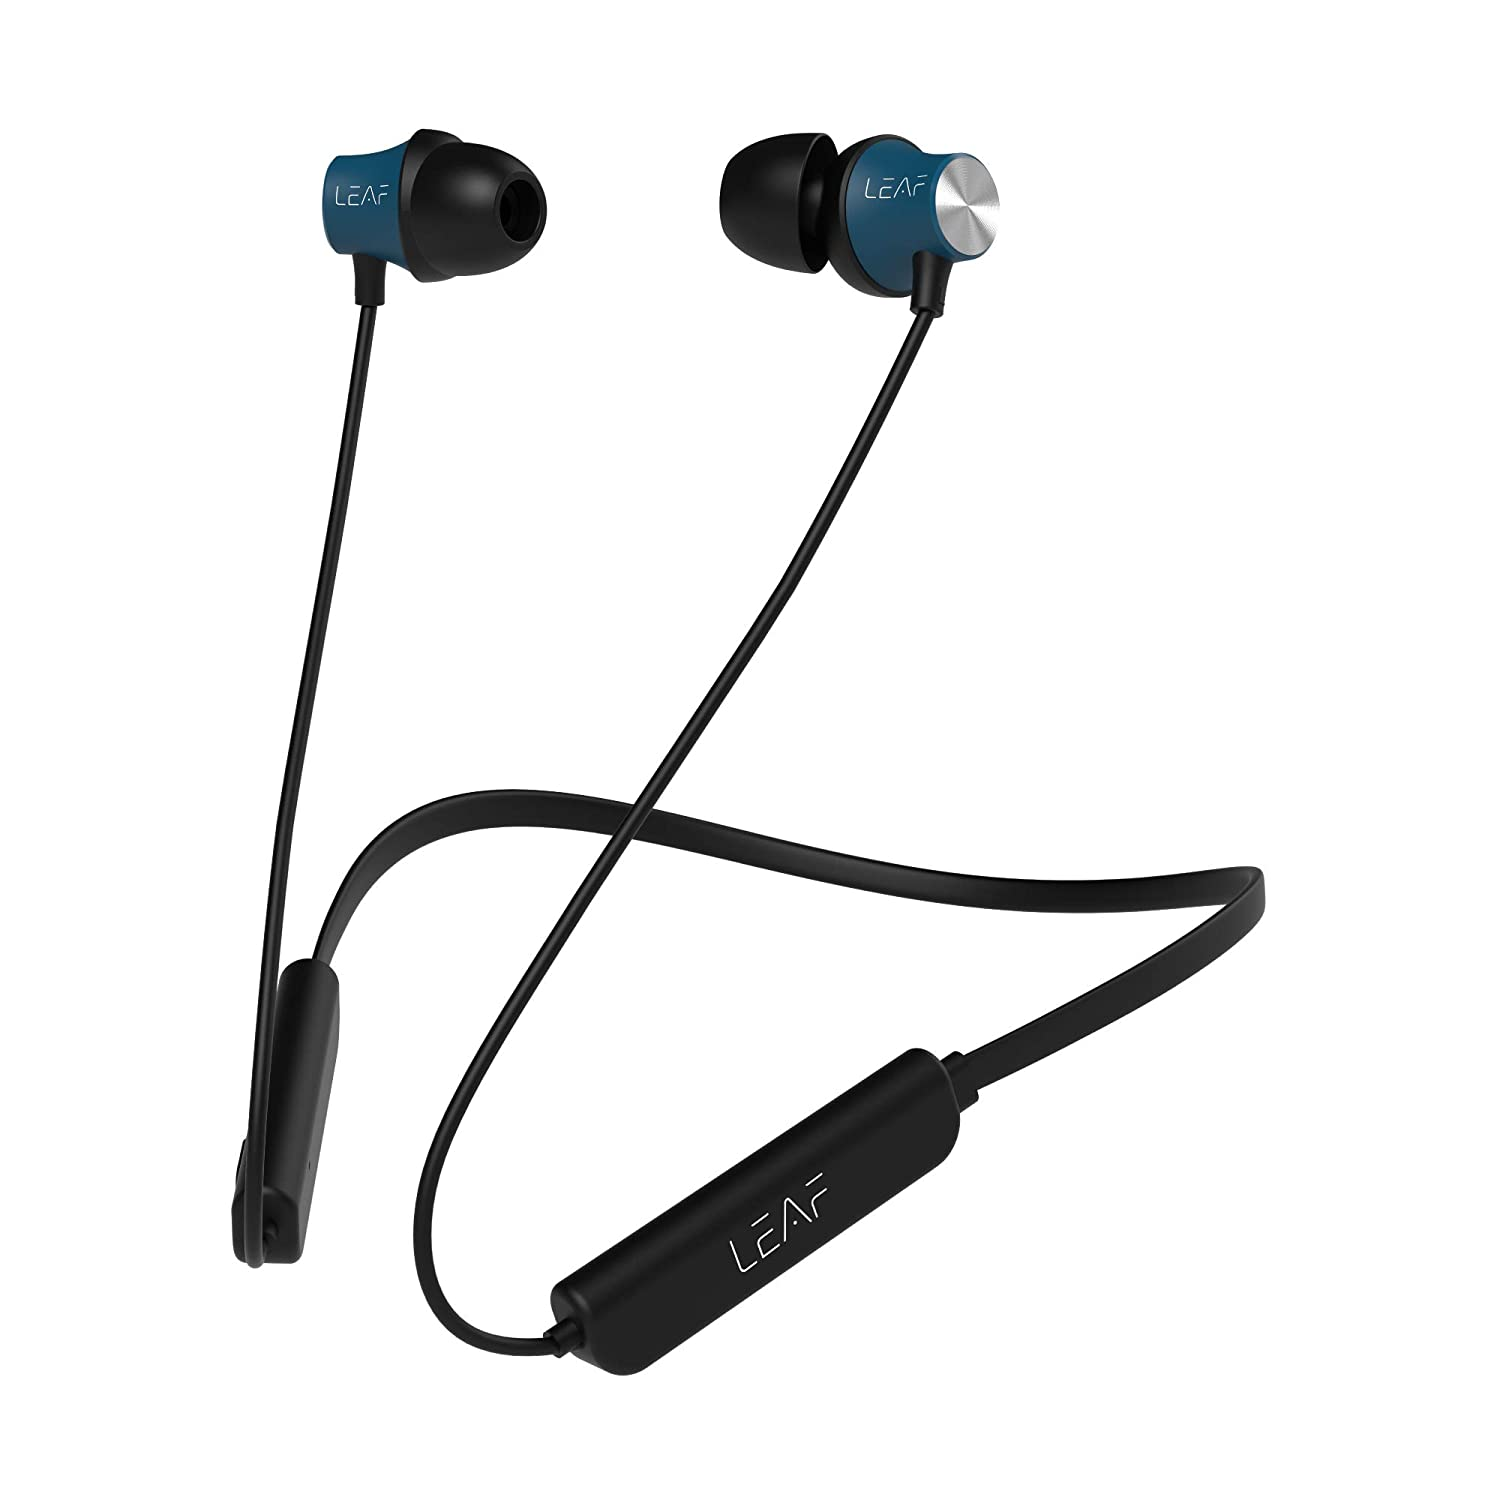 Leaf Collar Wireless Bluetooth Earphones with Mic, 45 Degree